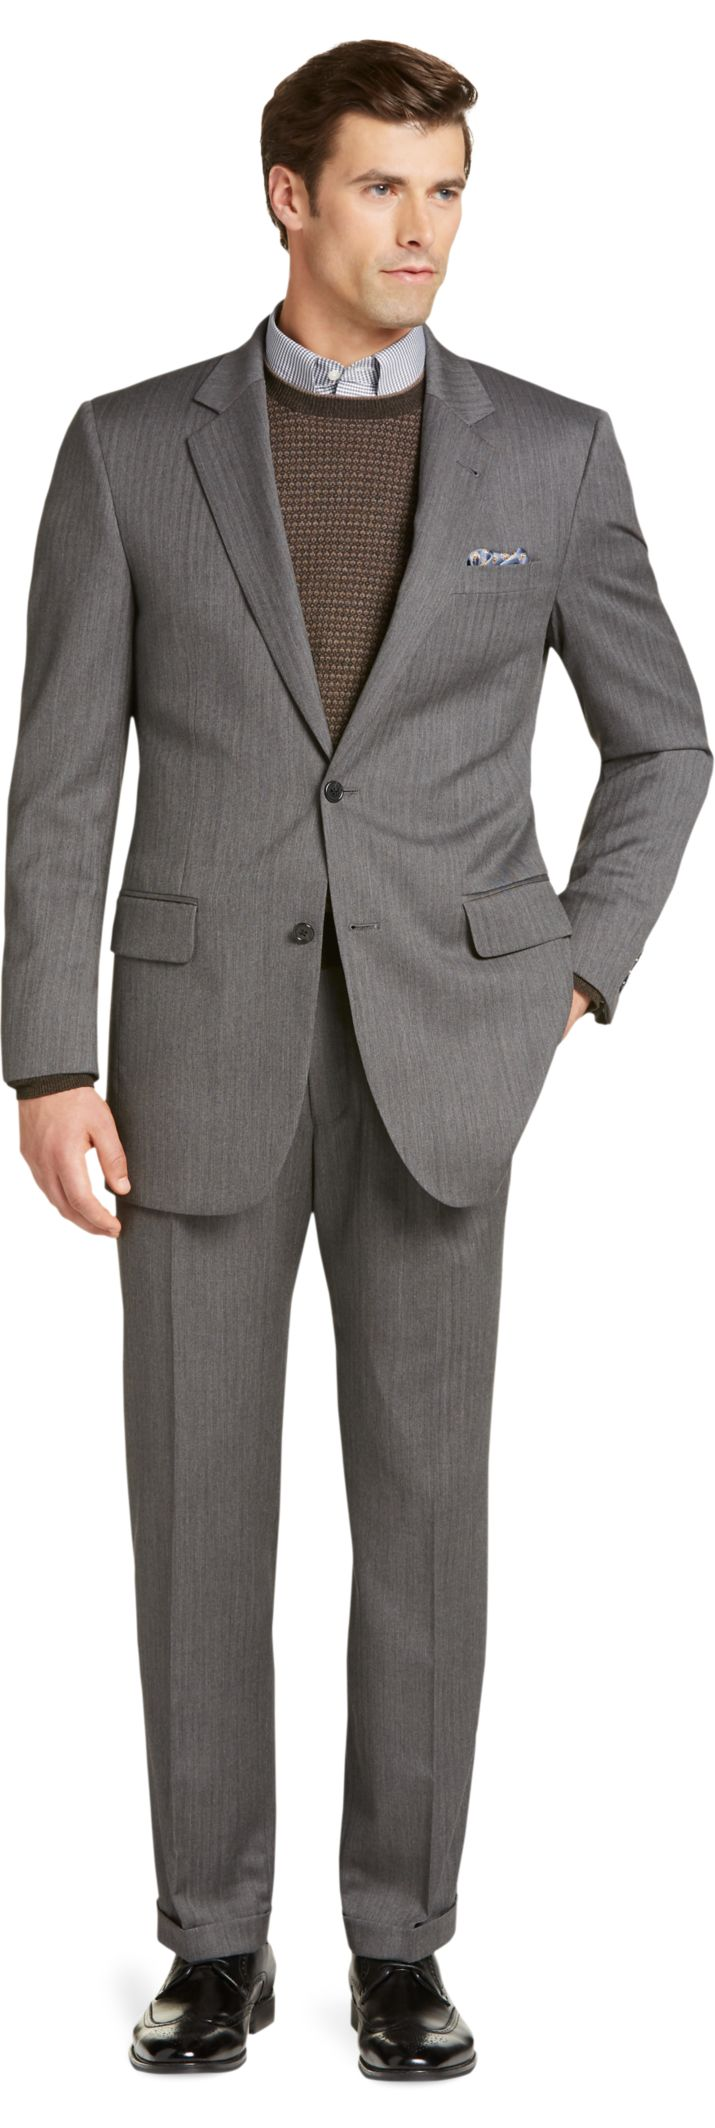 Signature Suits | Men's Suits | JoS. A. Bank Clothiers